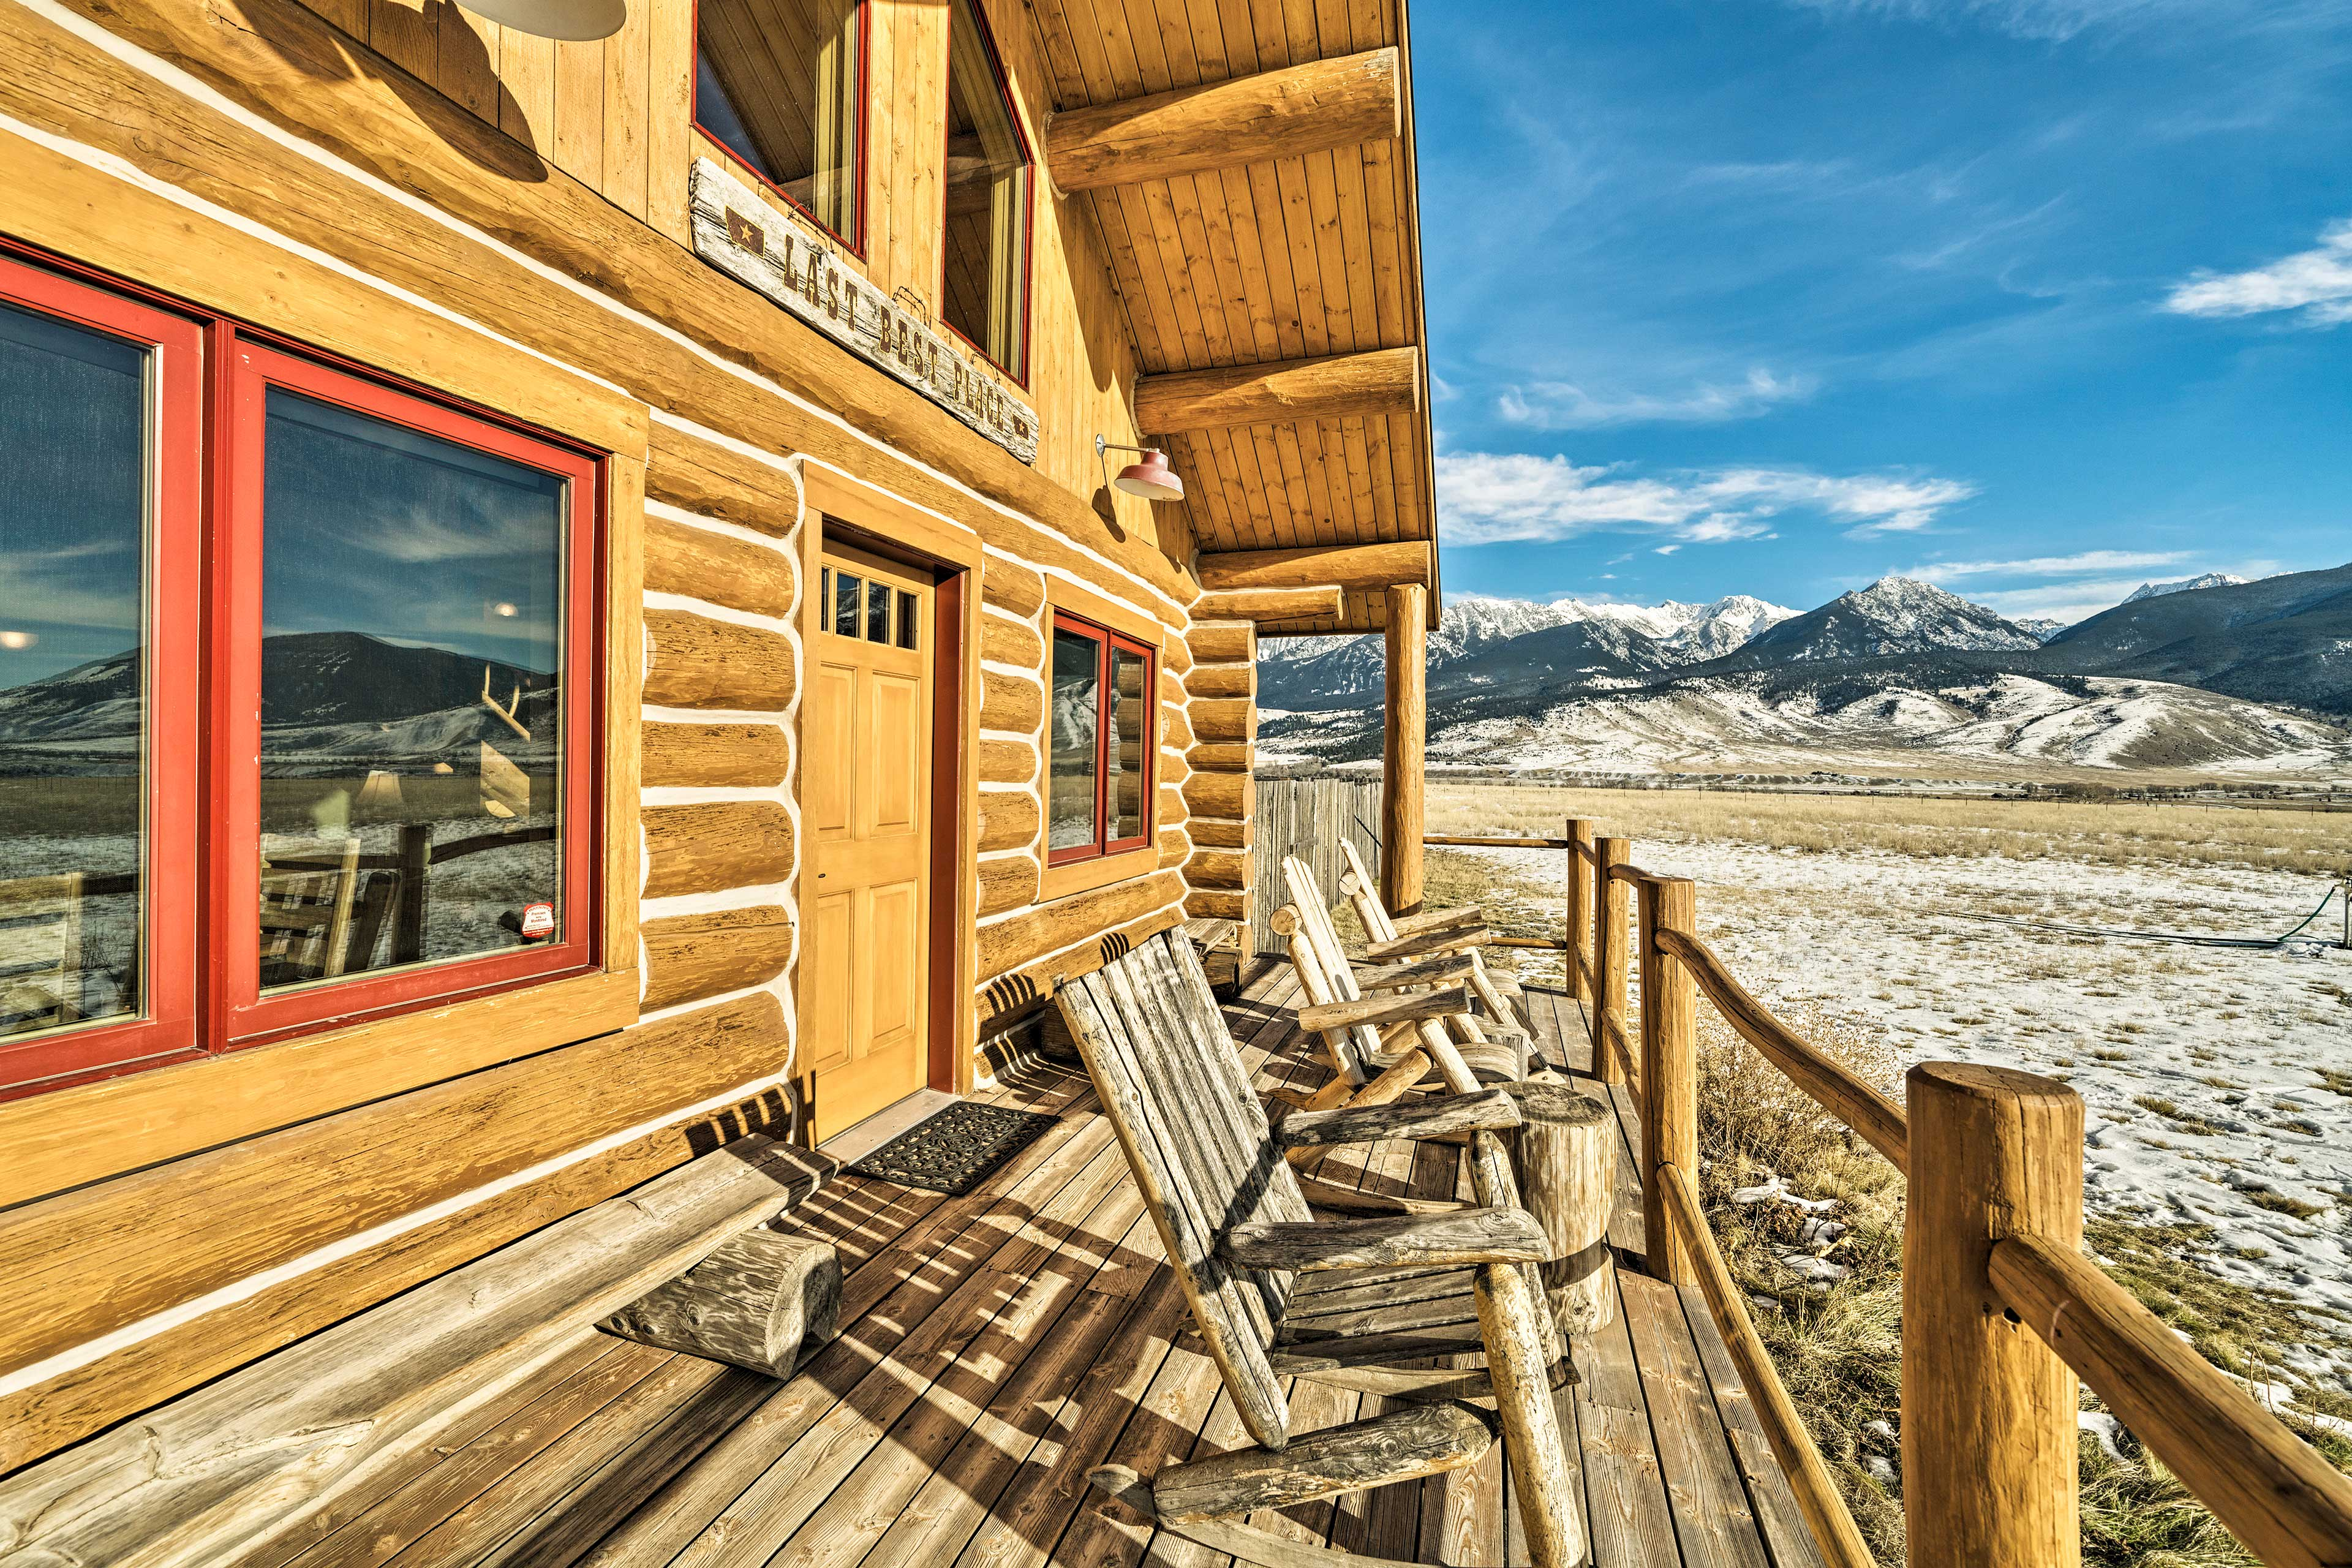 Hot coffee and alpine views are the perfect morning combo!